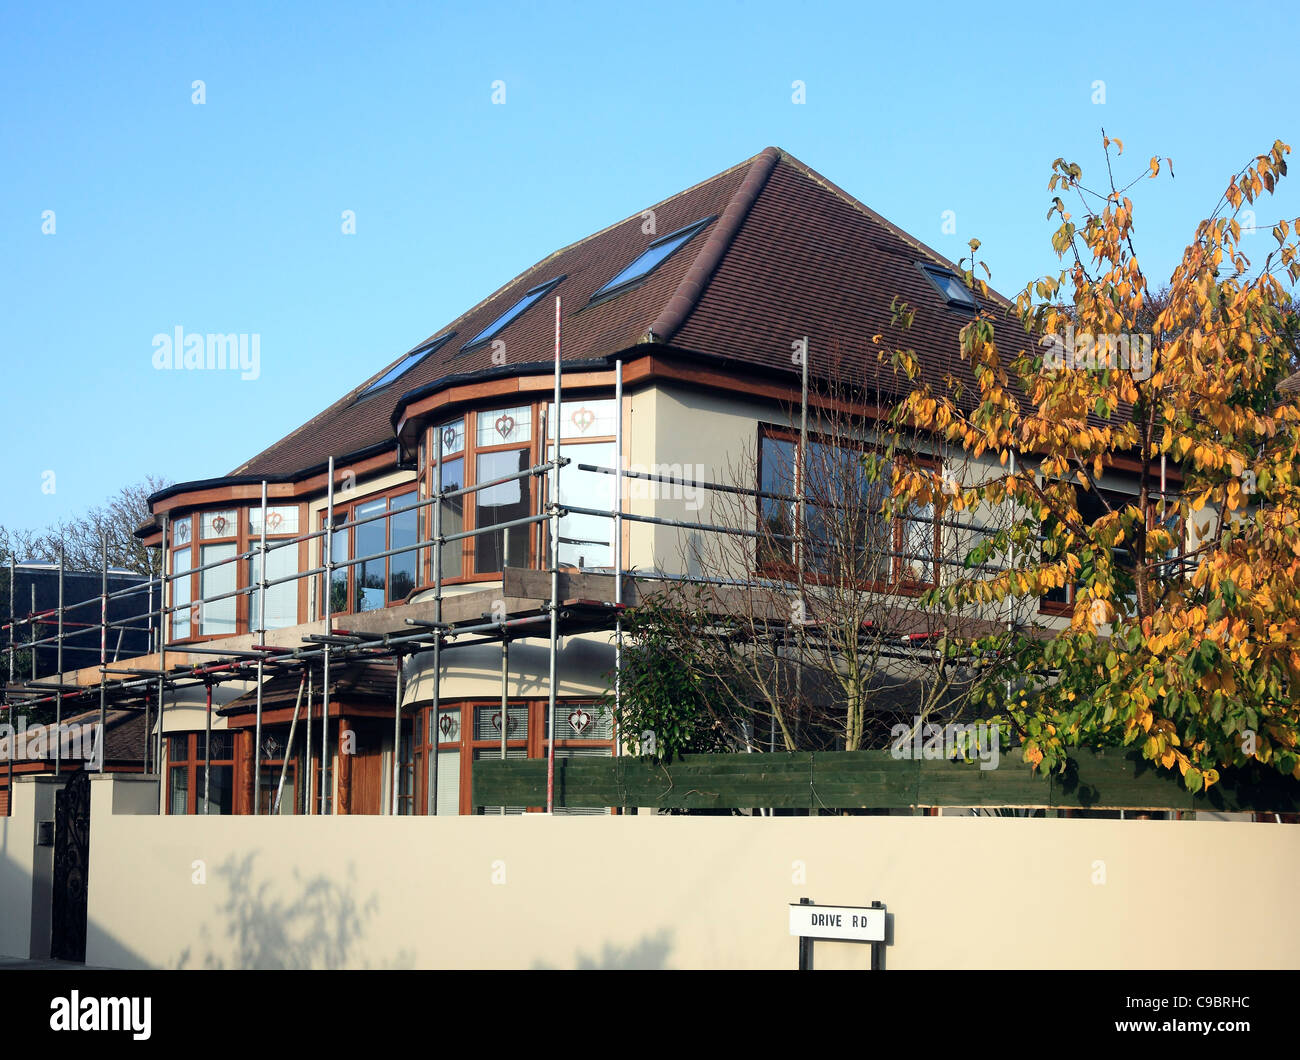 Scaffolding on a House - Stock Image